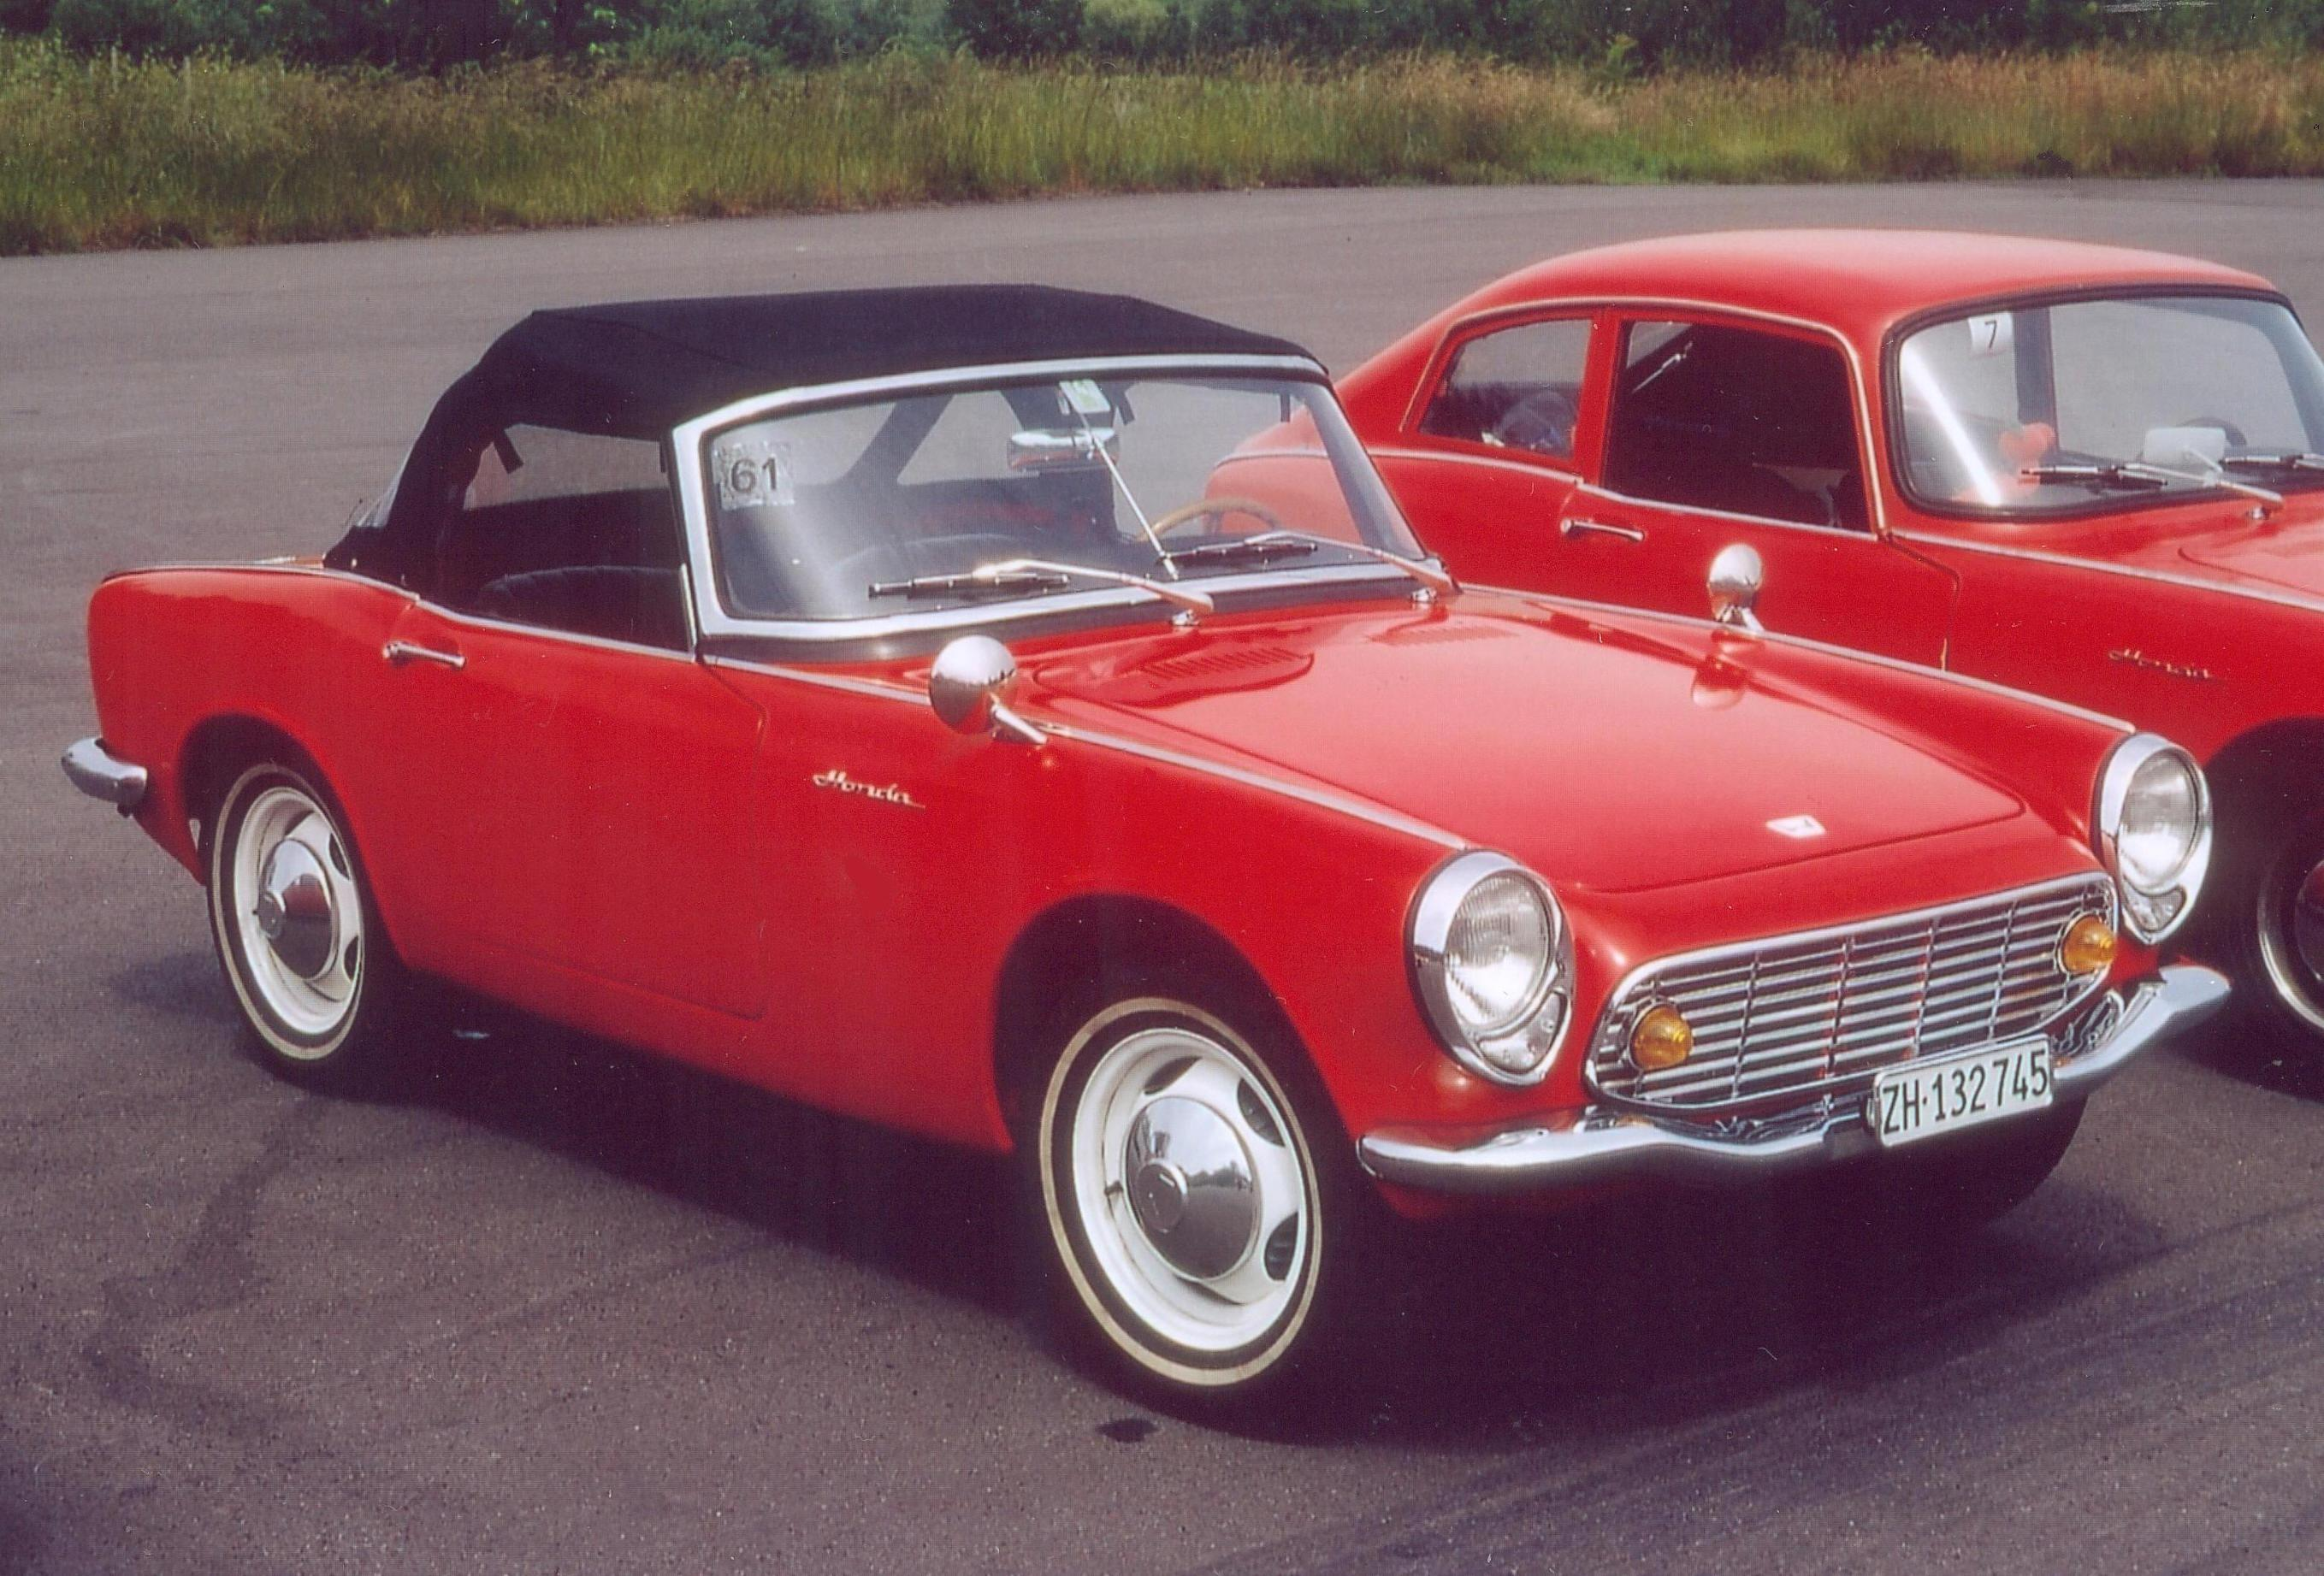 Japan Classic Car Gallery: Honda S600  The first honda sport car